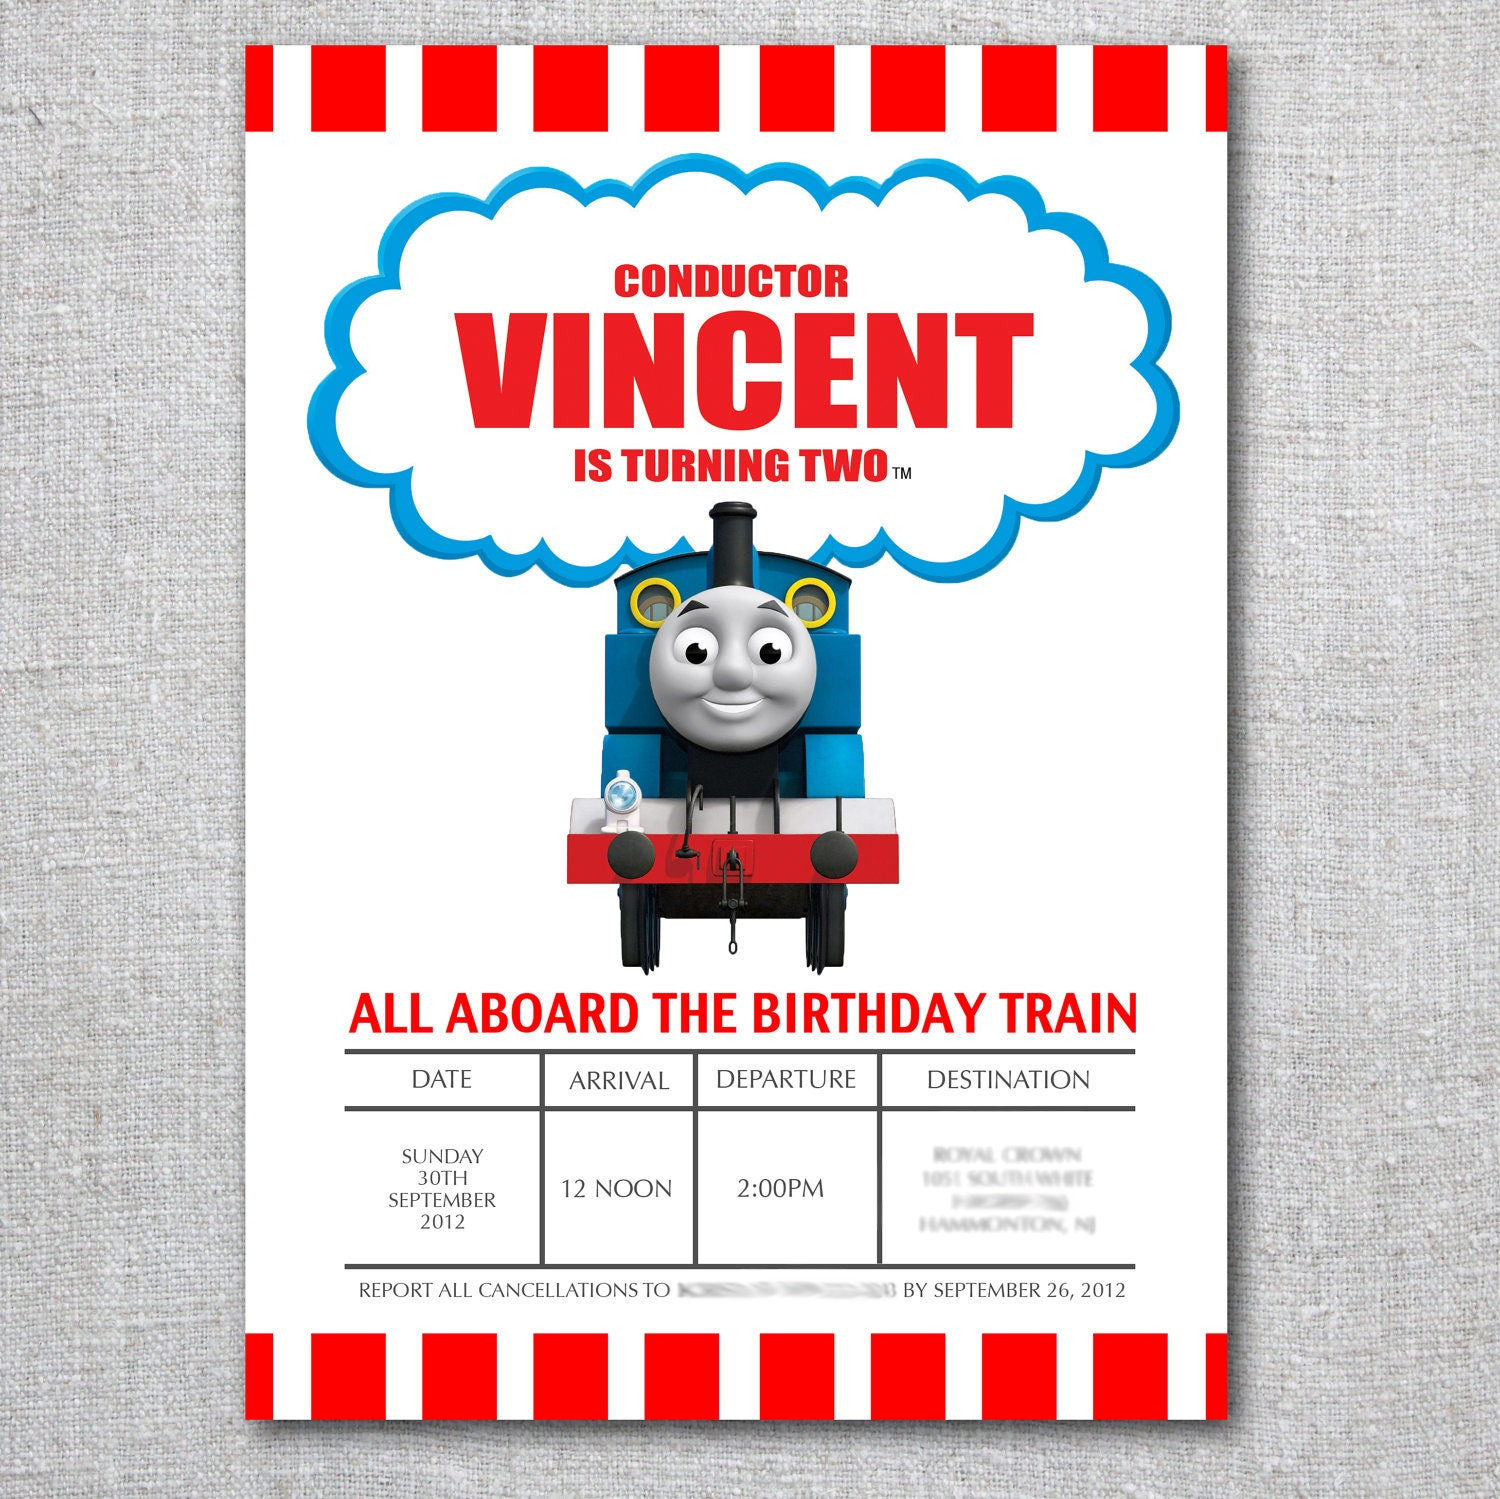 Thomas Invitations was adorable invitations ideas